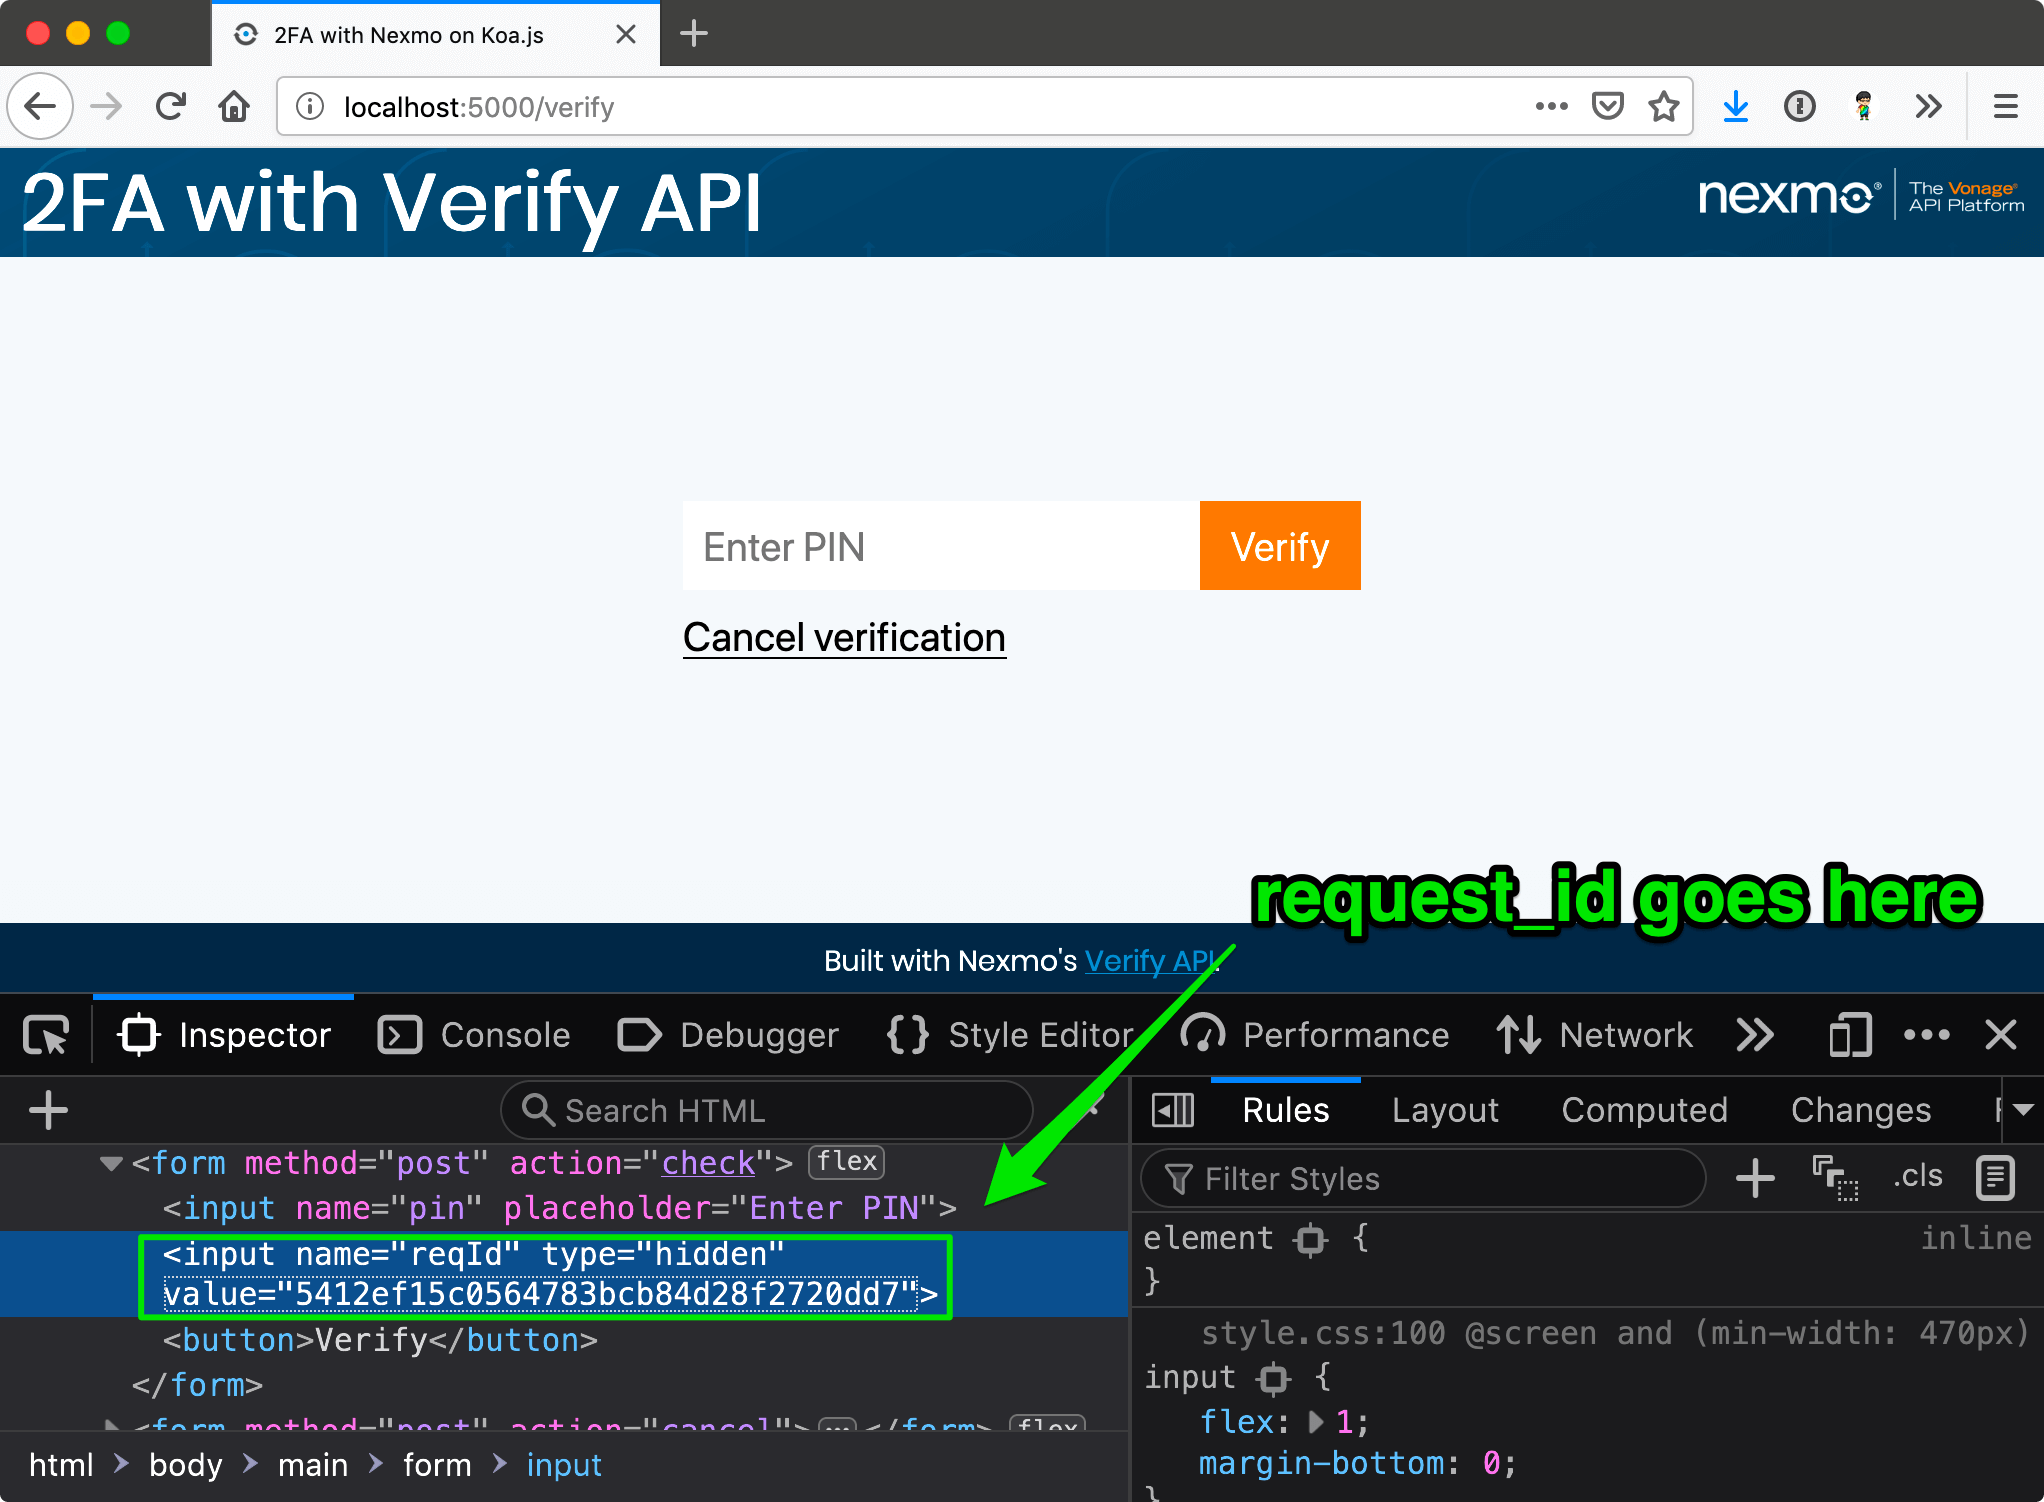 The request_id is passed to the frontend